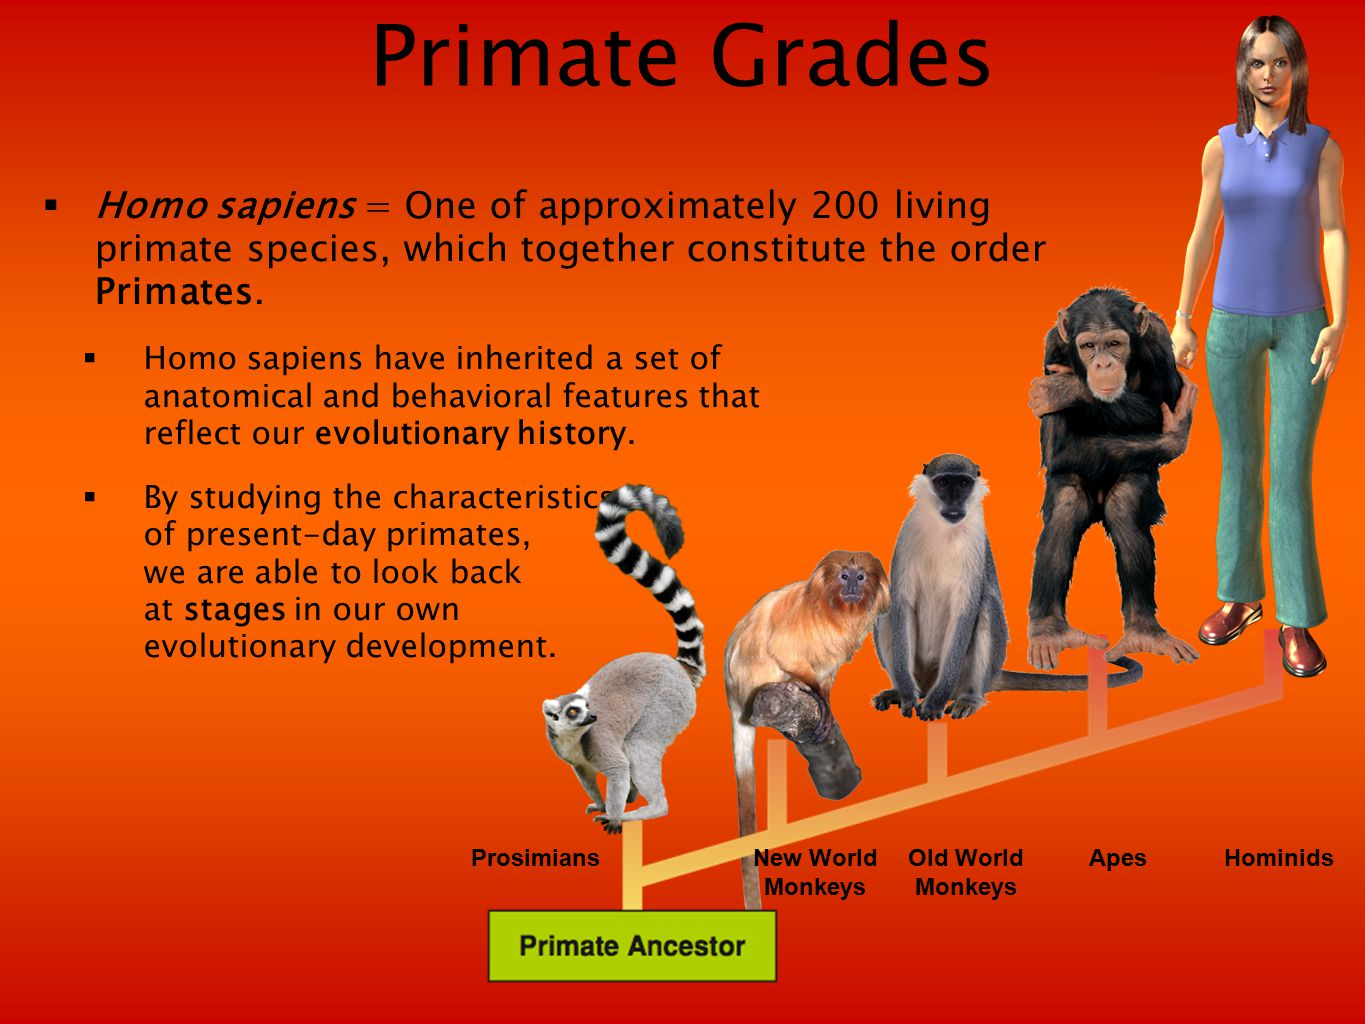  Homo sapiens = One of approximately 200 living primate species, which together constitute the order Primates.